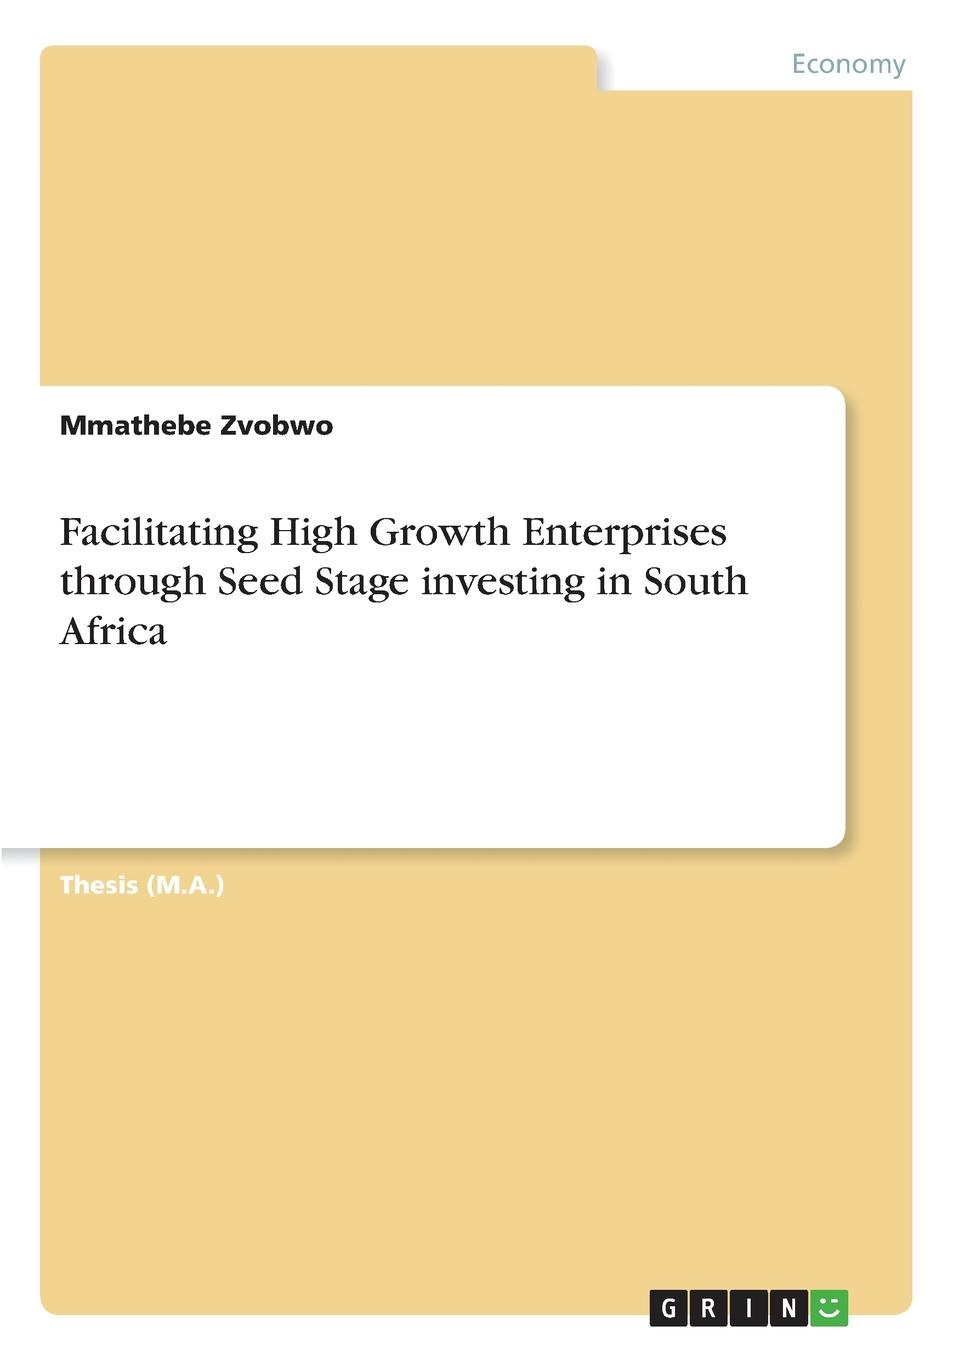 цена на Mmathebe Zvobwo Facilitating High Growth Enterprises through Seed Stage investing in South Africa